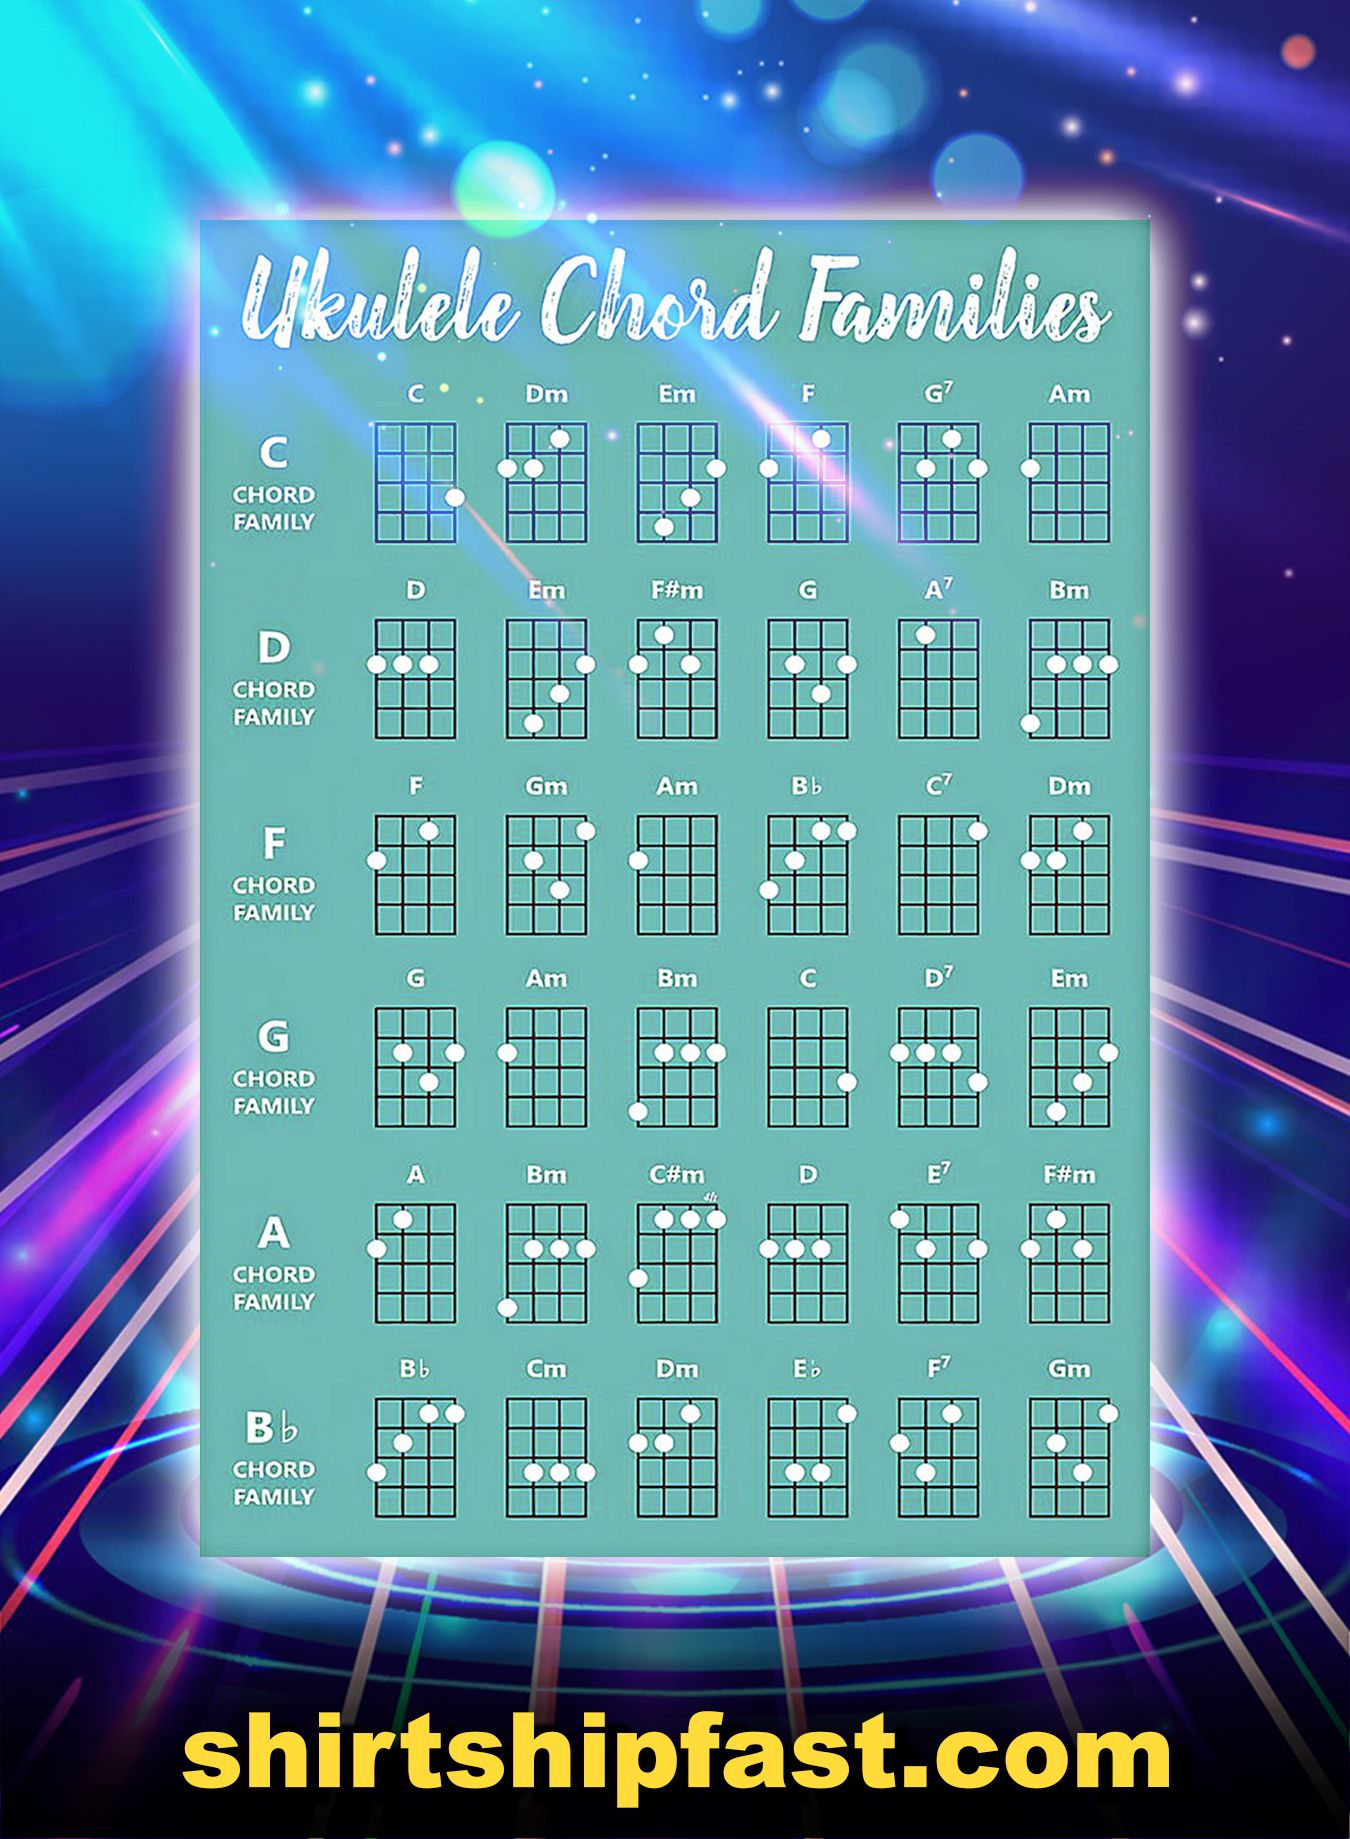 Ukulele Chord Families Poster - A2